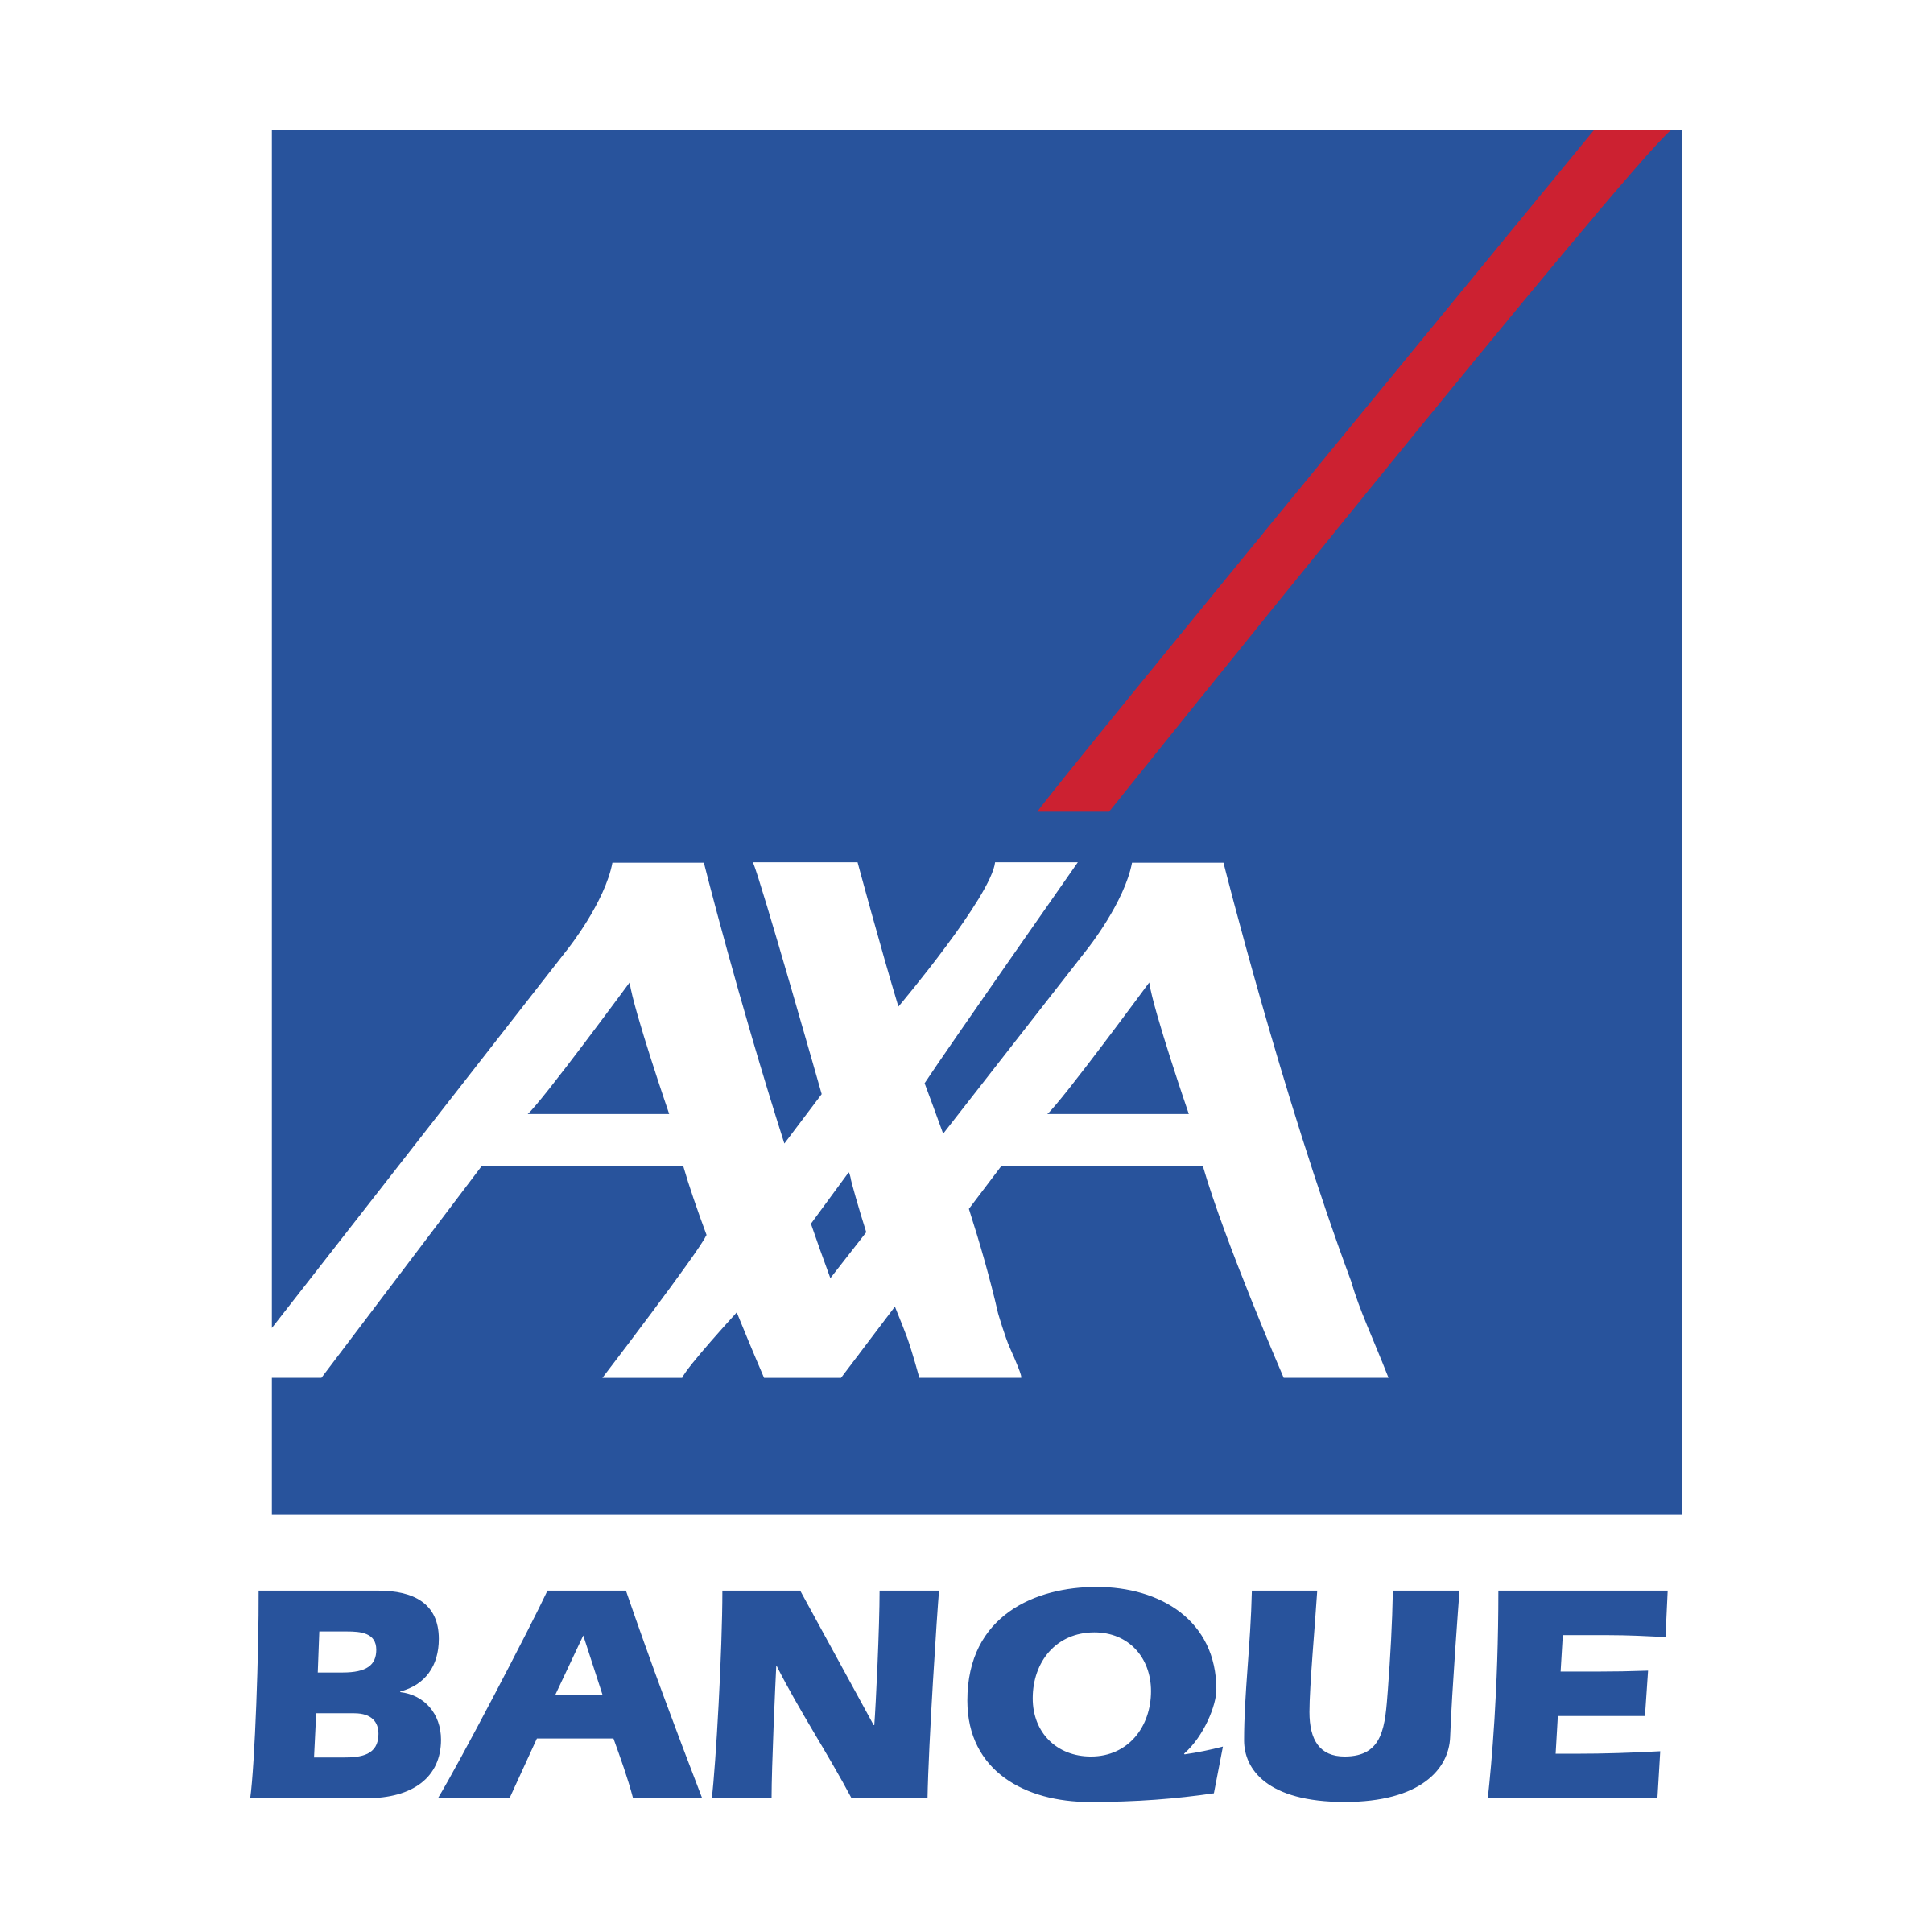 Banque Image Logo axa banque logo png transparent & svg vector - freebie supply